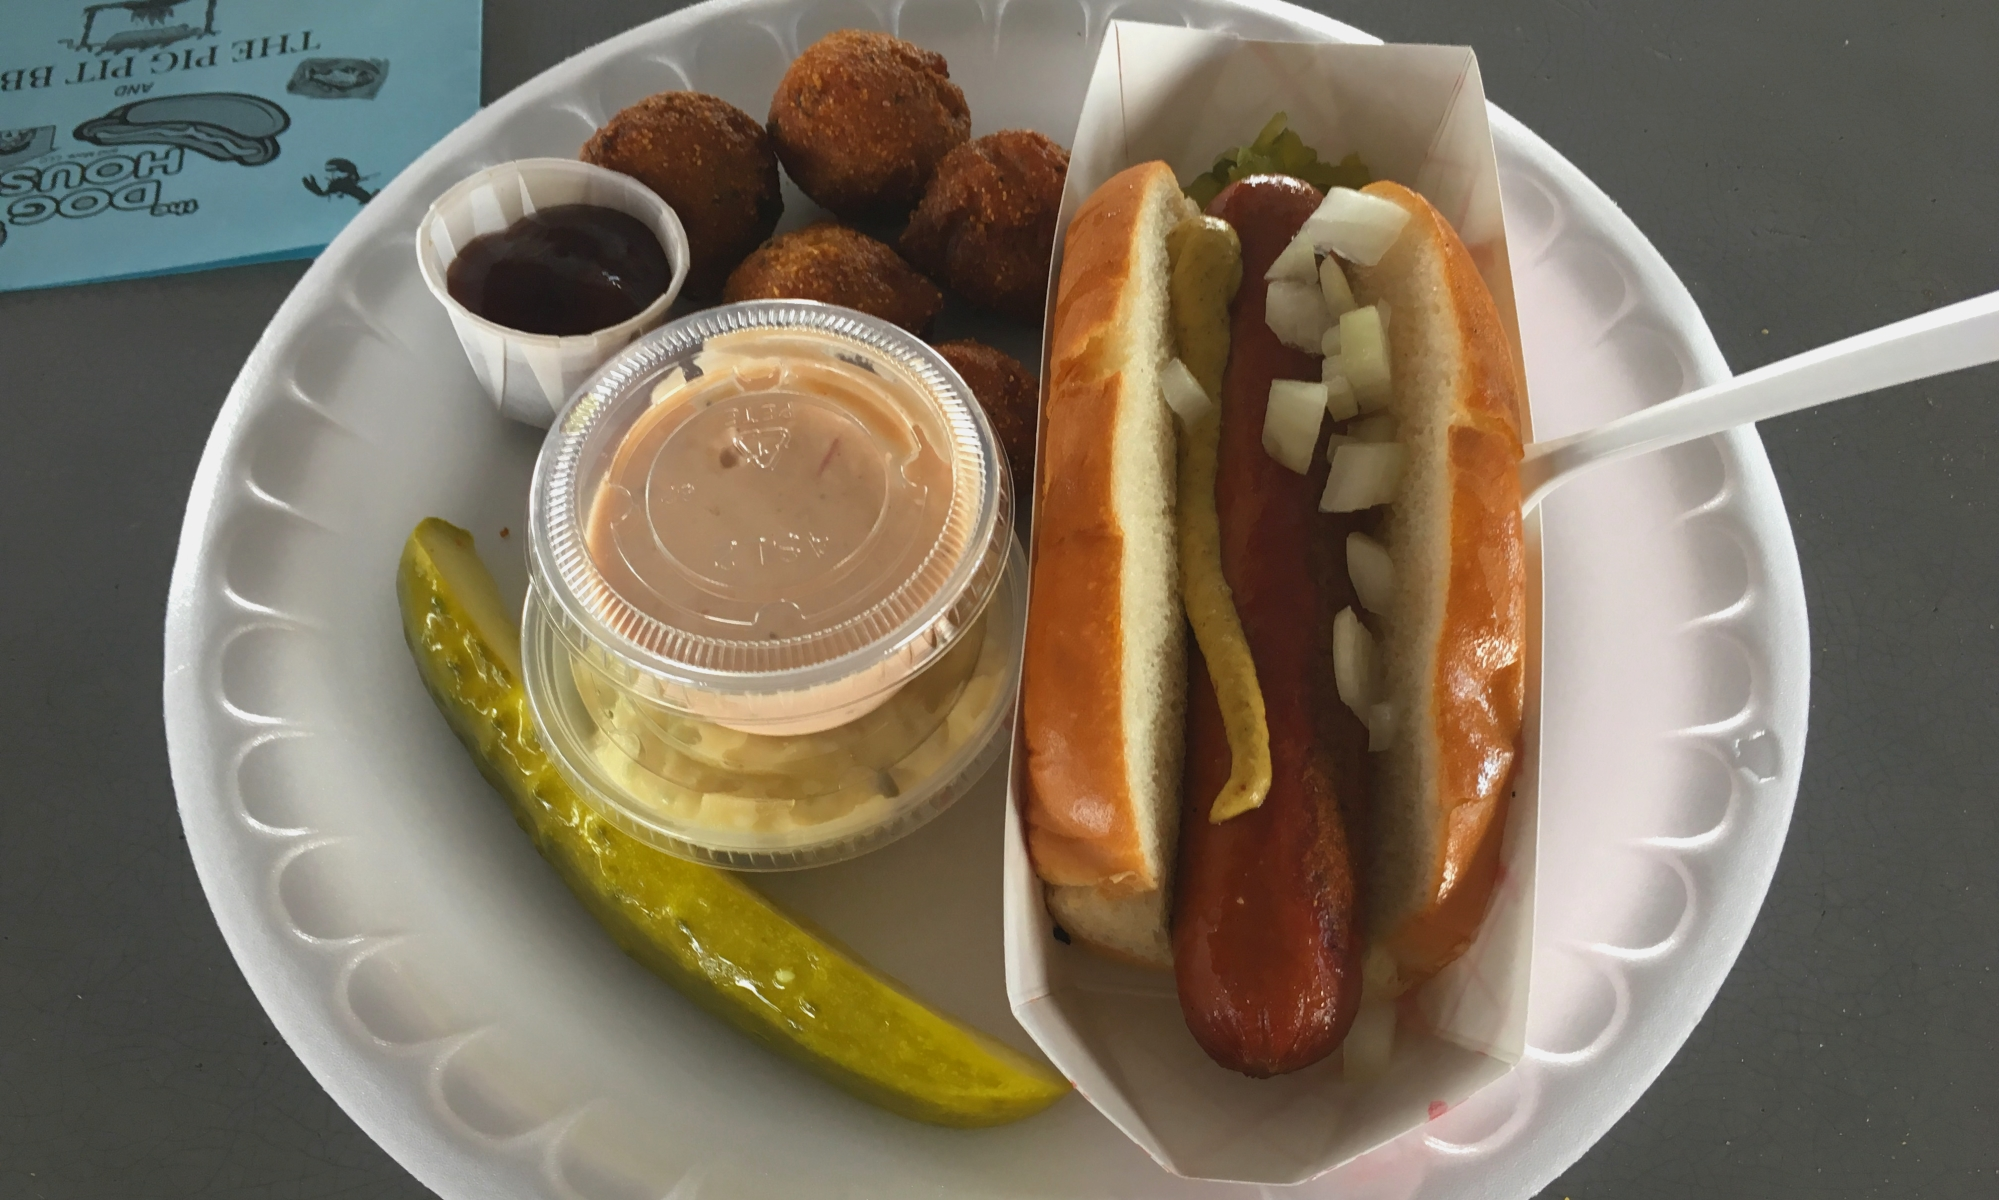 Image: Hot dog platter at The Dog House and More, Ruskin